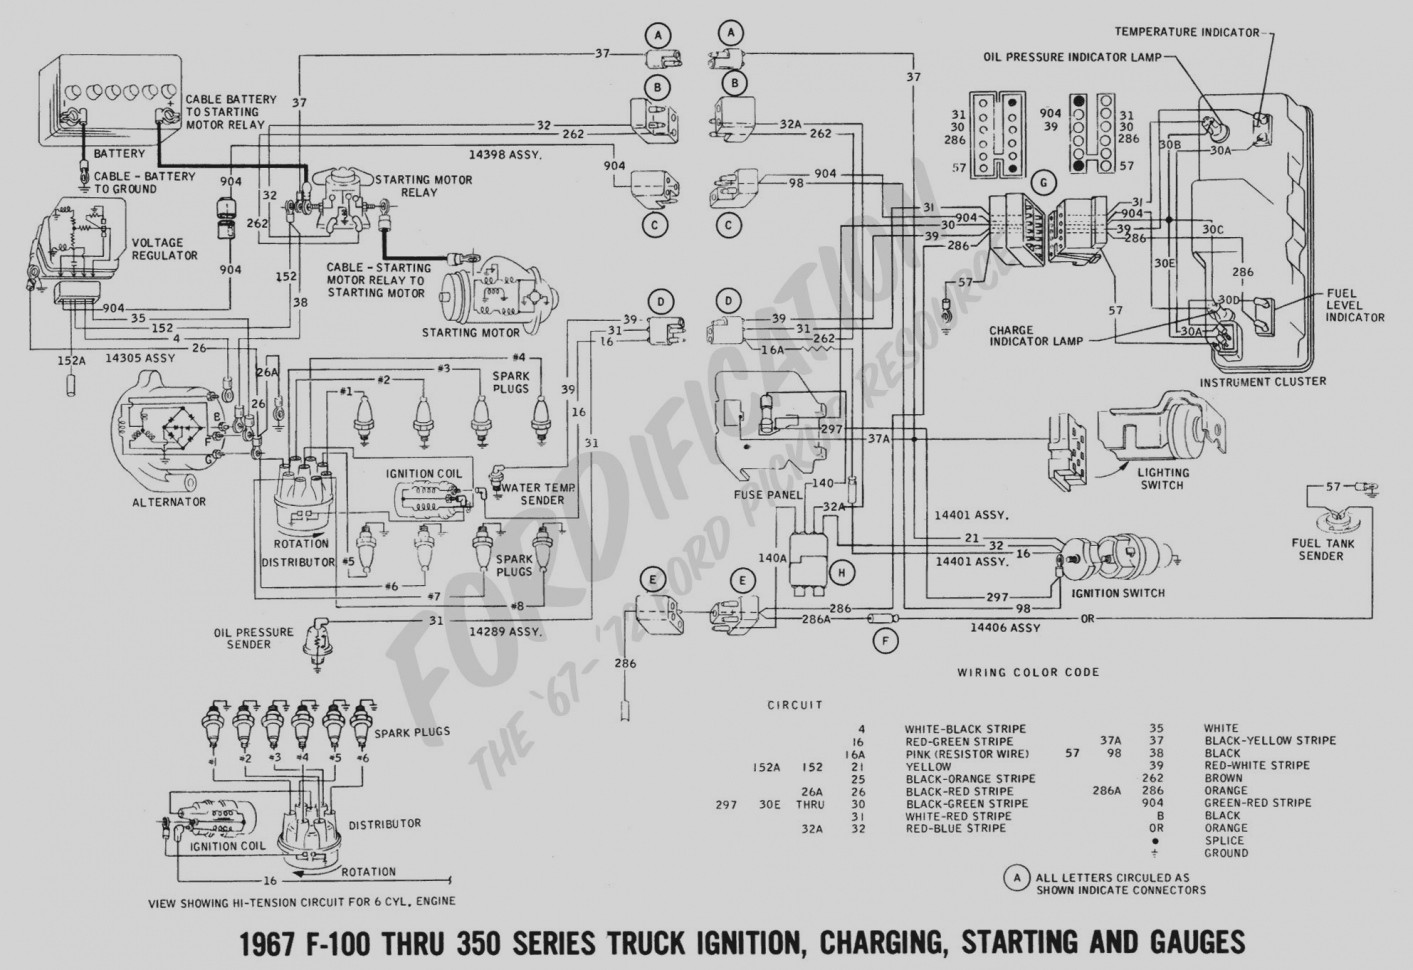 1977 Ford F150 Ignition Switch Wiring Diagram from static-assets.imageservice.cloud